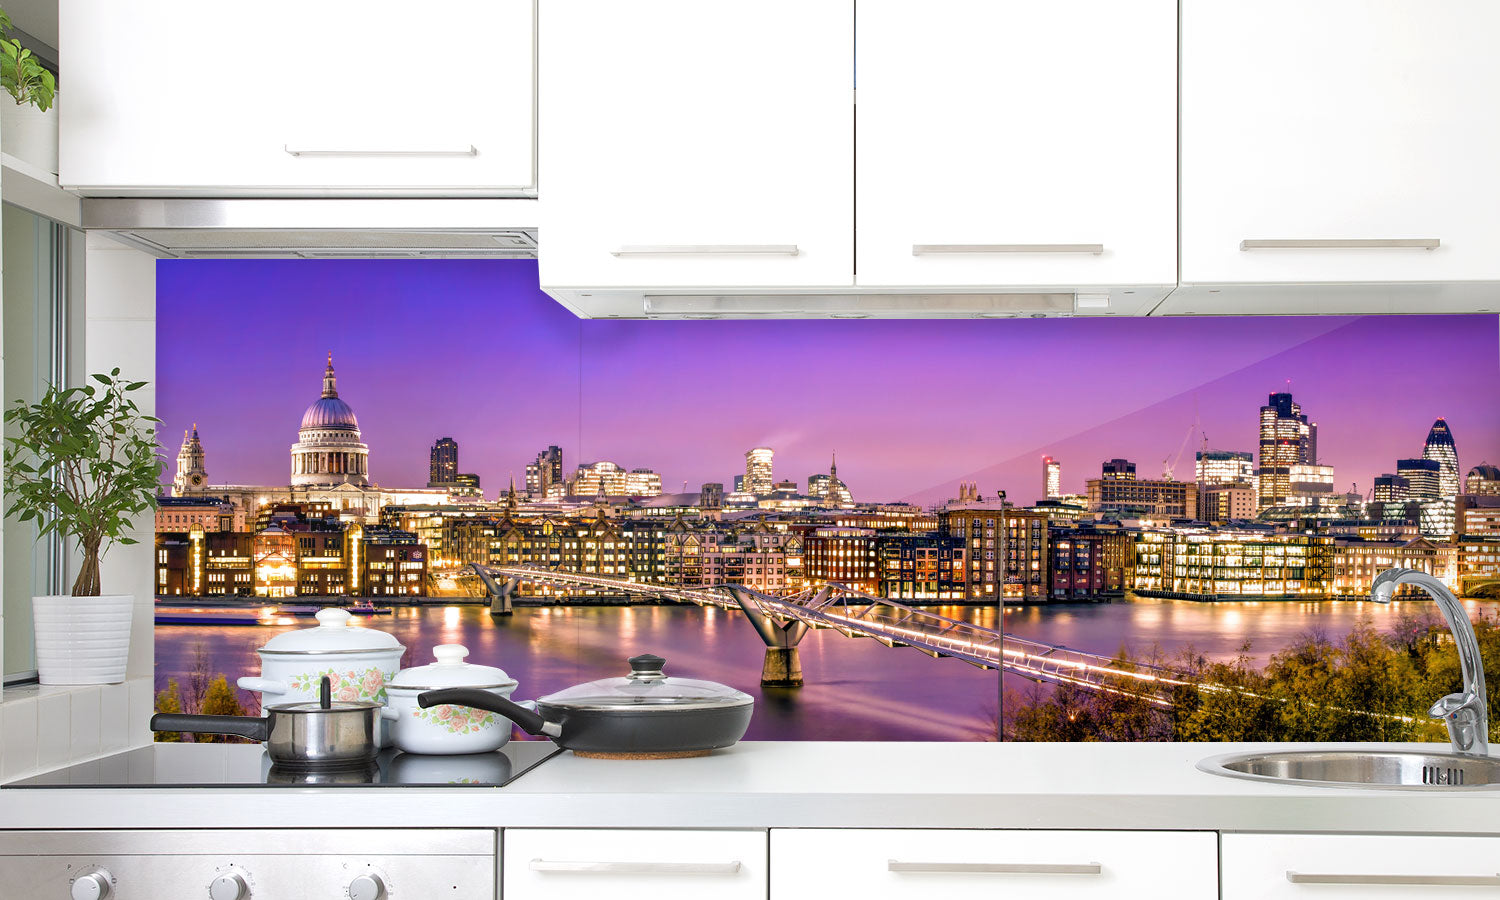 Kuhinjski paneli City of London at twilight - Stekleni / PVC plošče / Pleksi steklo - s tiskom za kuhinjo, Stenske obloge PKU0251 - Life-decor.si